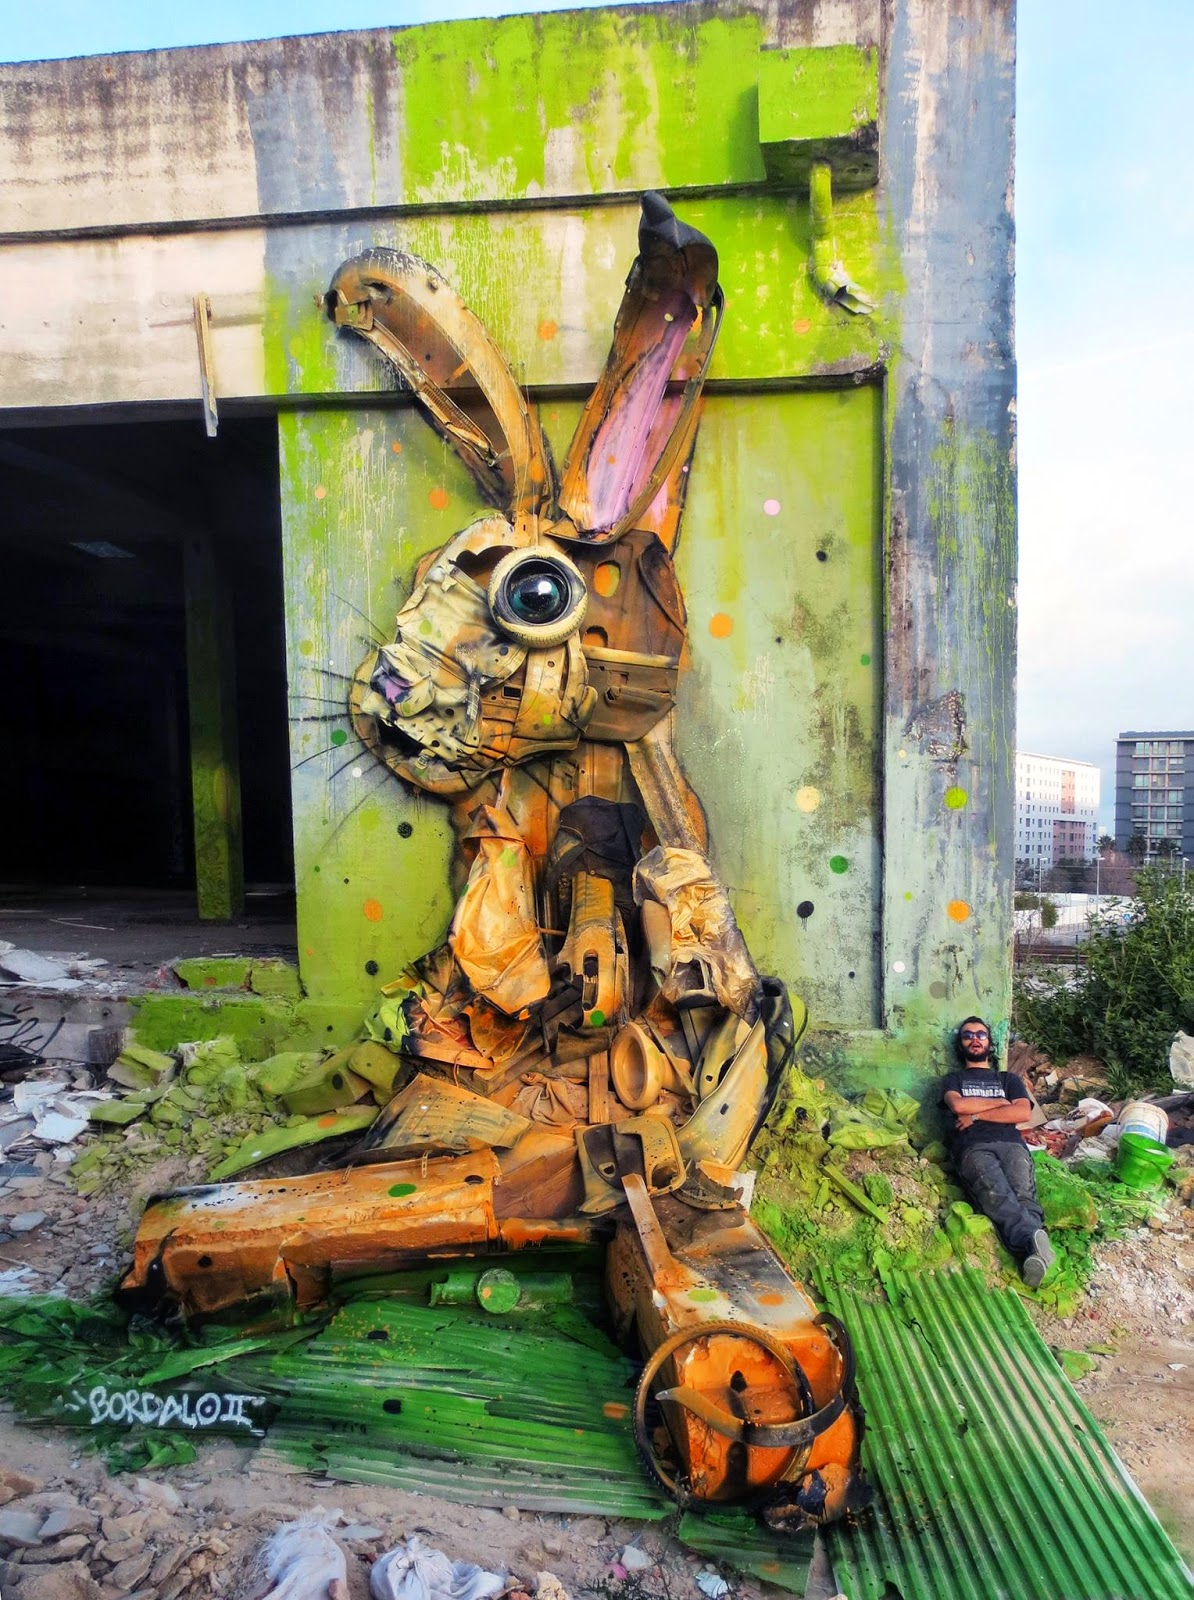 Bordalo II spent the last few days working on a brand new piece which is featuring an oversized rabbit built using trash and found materials.